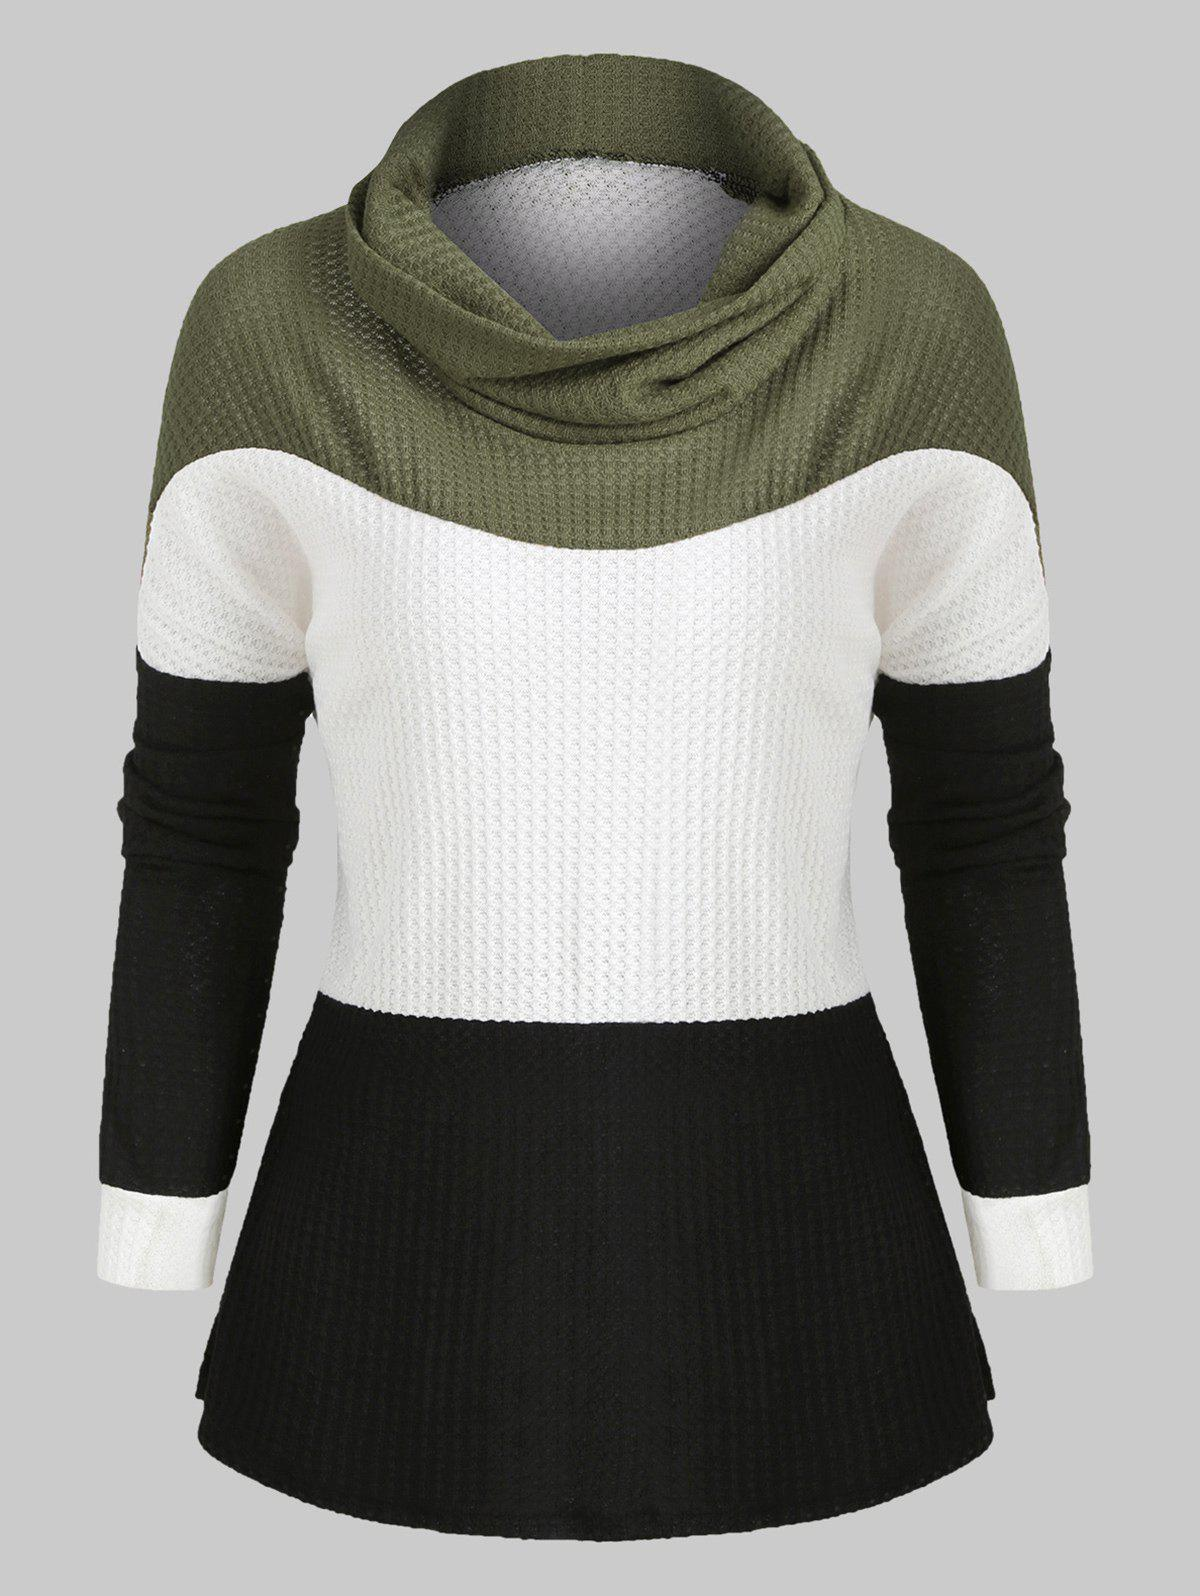 Cowl Neck Colorblock Long Sleeves Knitwear - CAMOUFLAGE GREEN XL